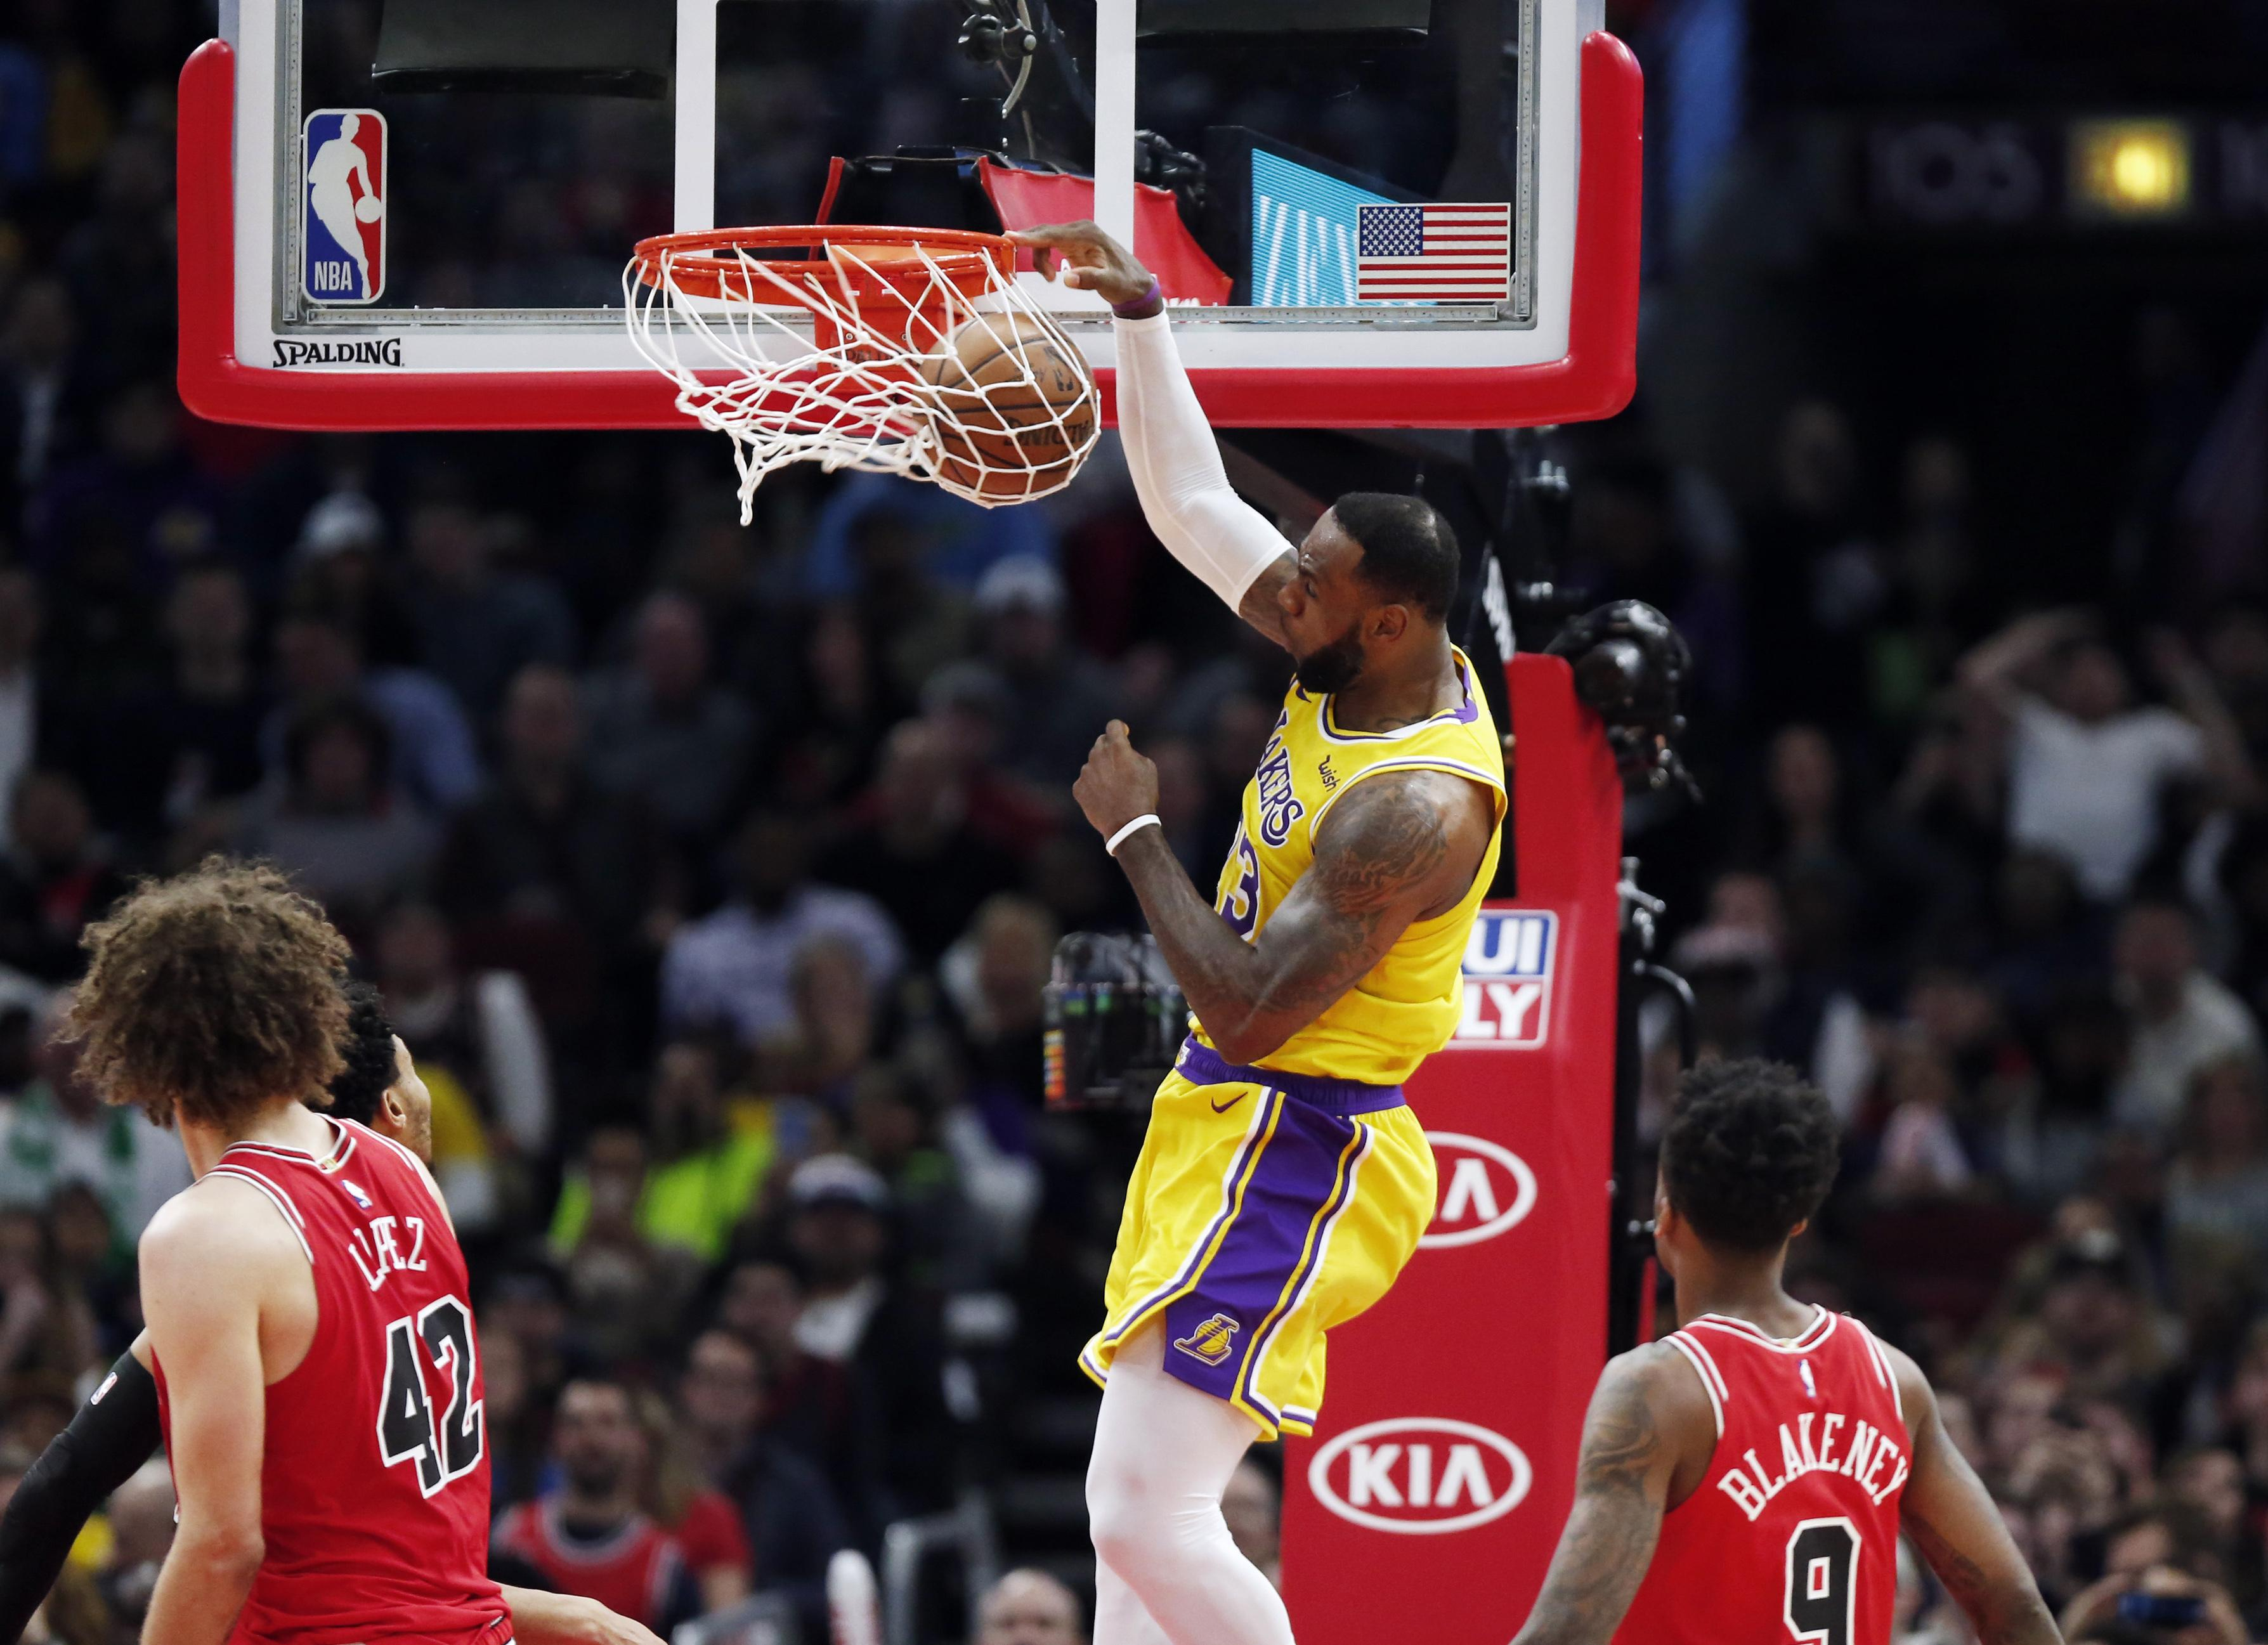 cb74e9175 Los Angeles Lakers forward LeBron James (23) dunks in front of Chicago  Bulls guard